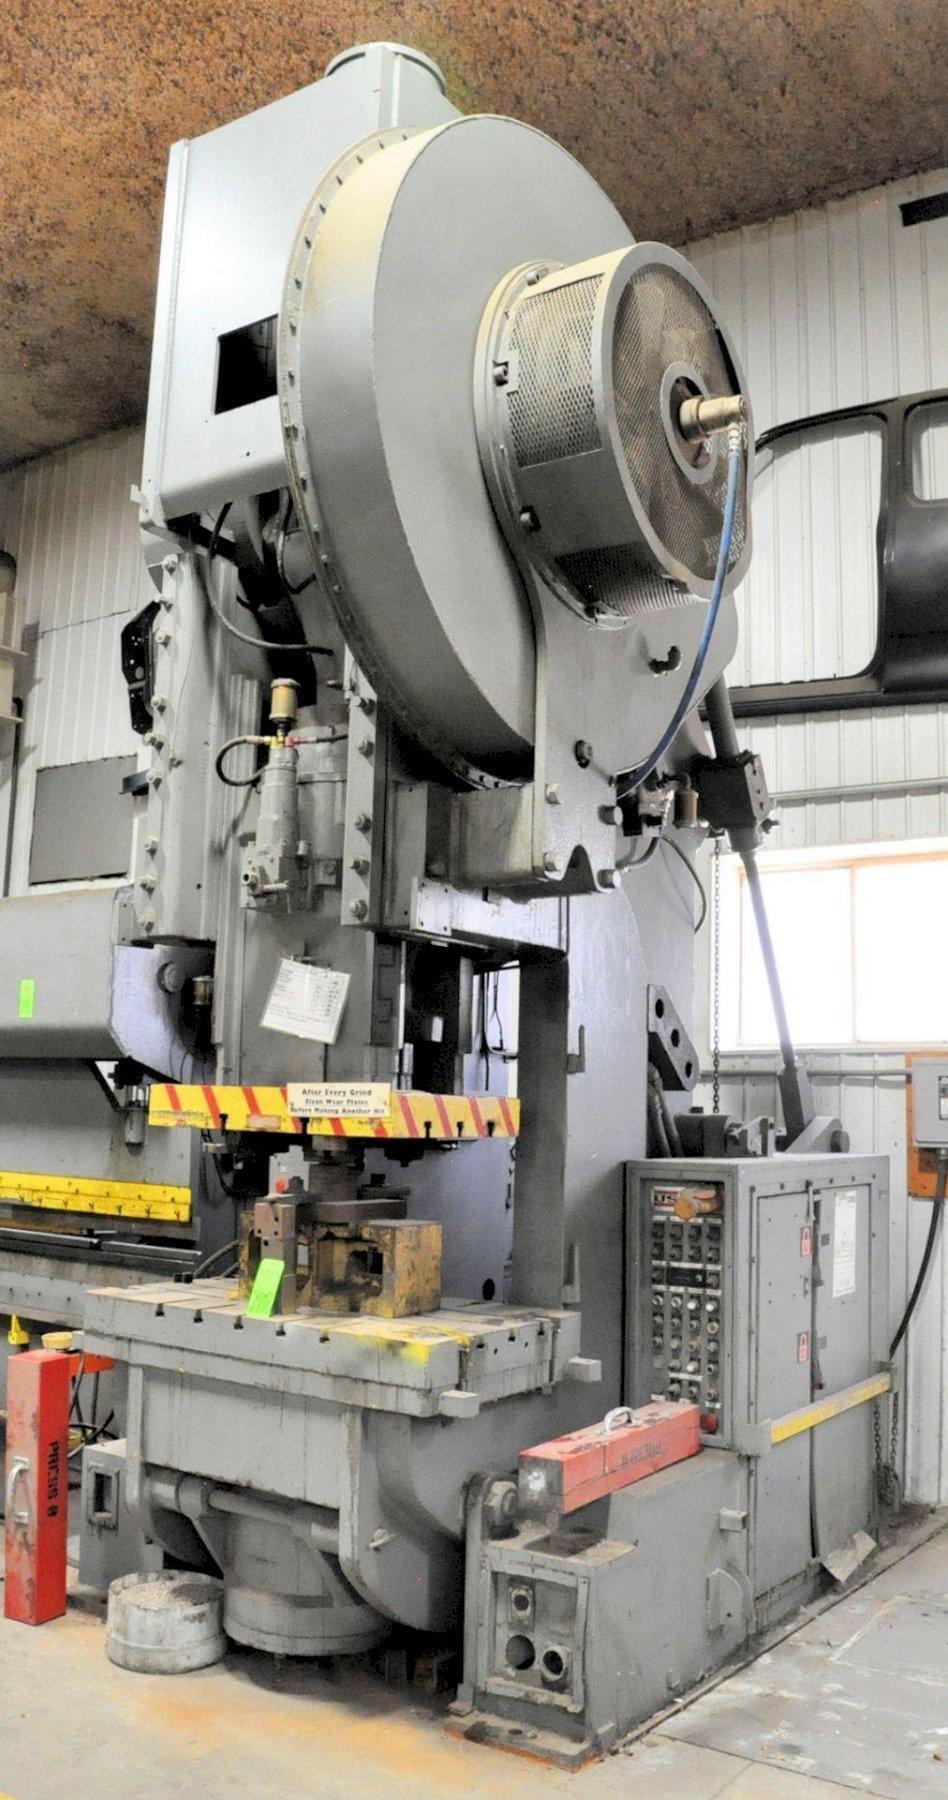 150 TON CLEARING 150-P-701 OBI STAMPING PRESS. STOCK # 0100221